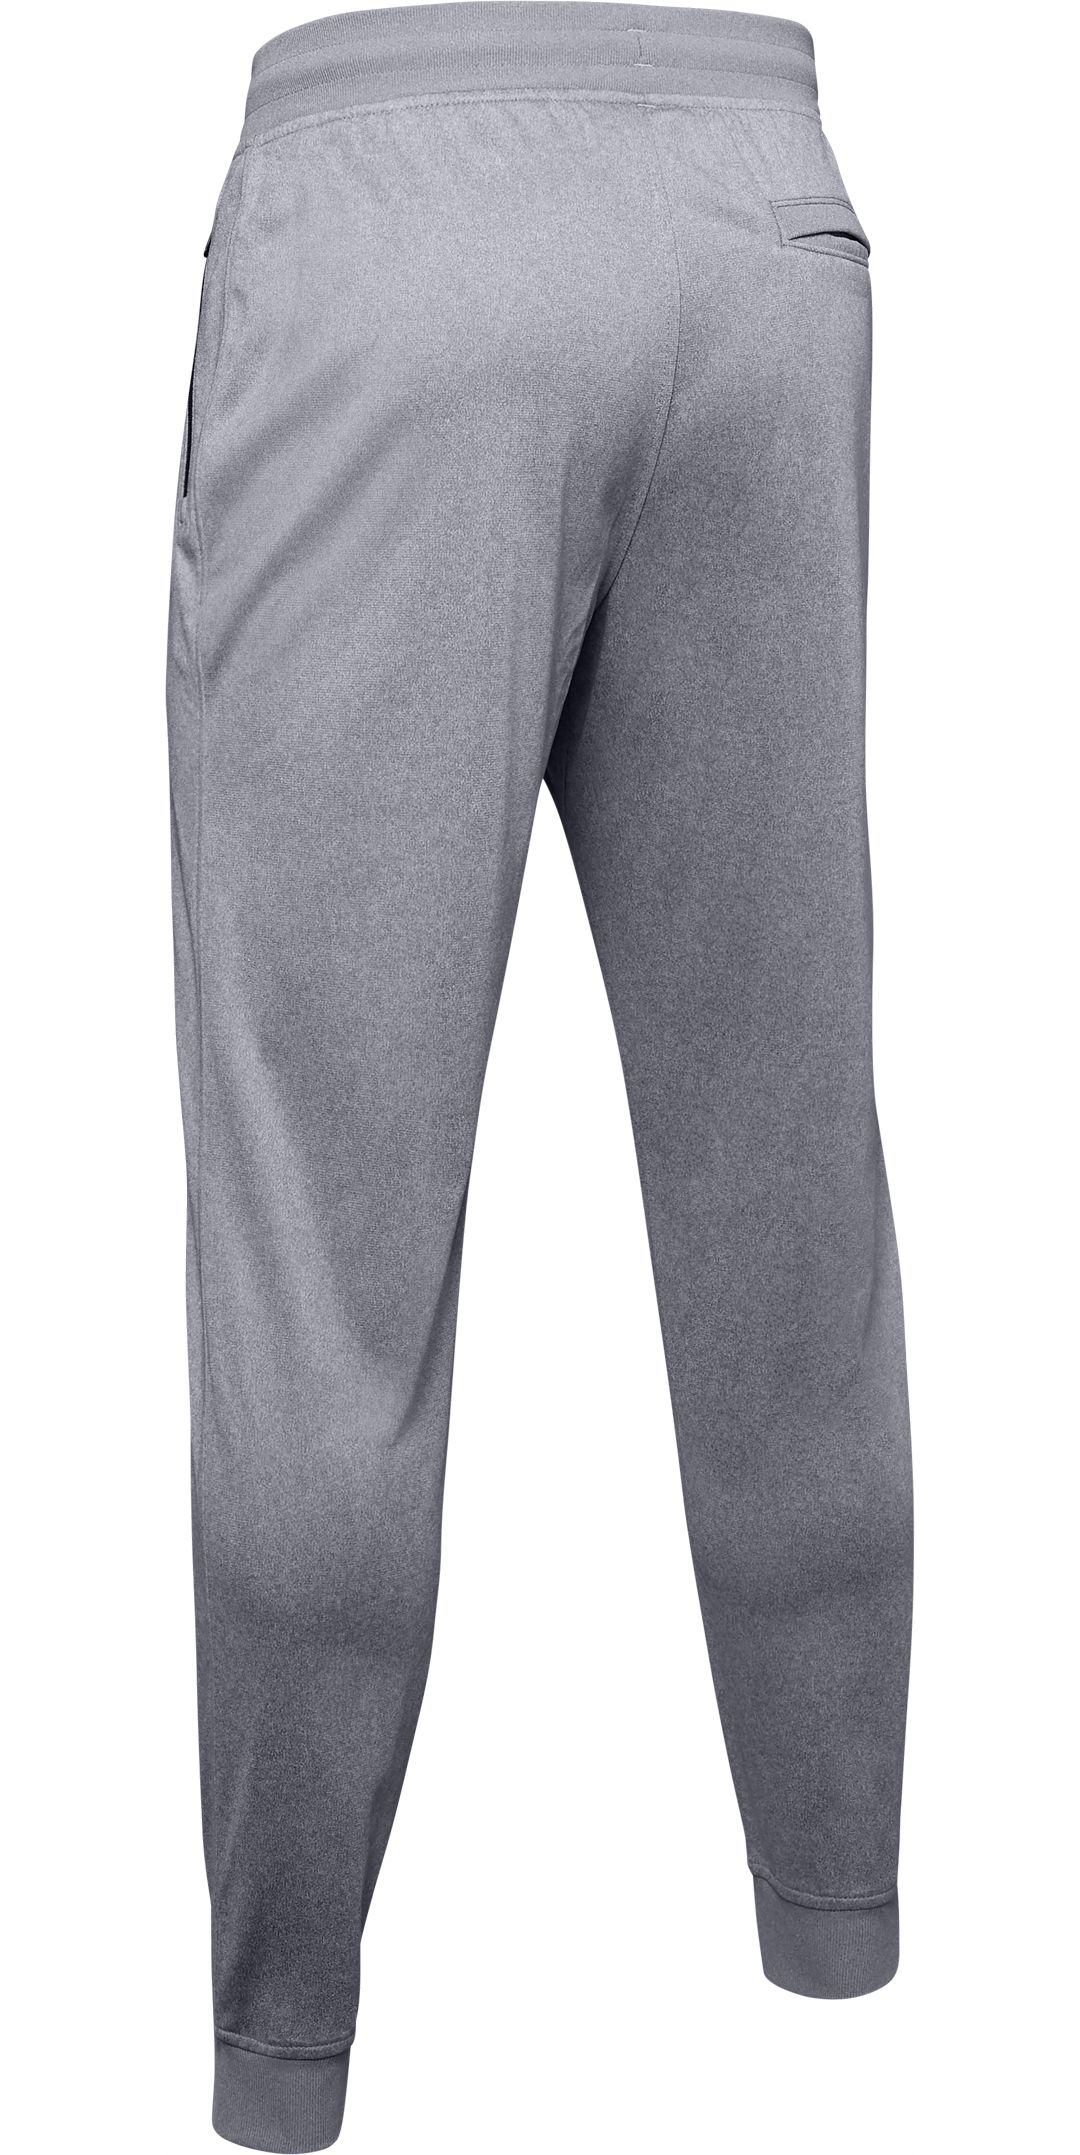 905ac1ab5c Under Armour Men's Sportstyle Joggers